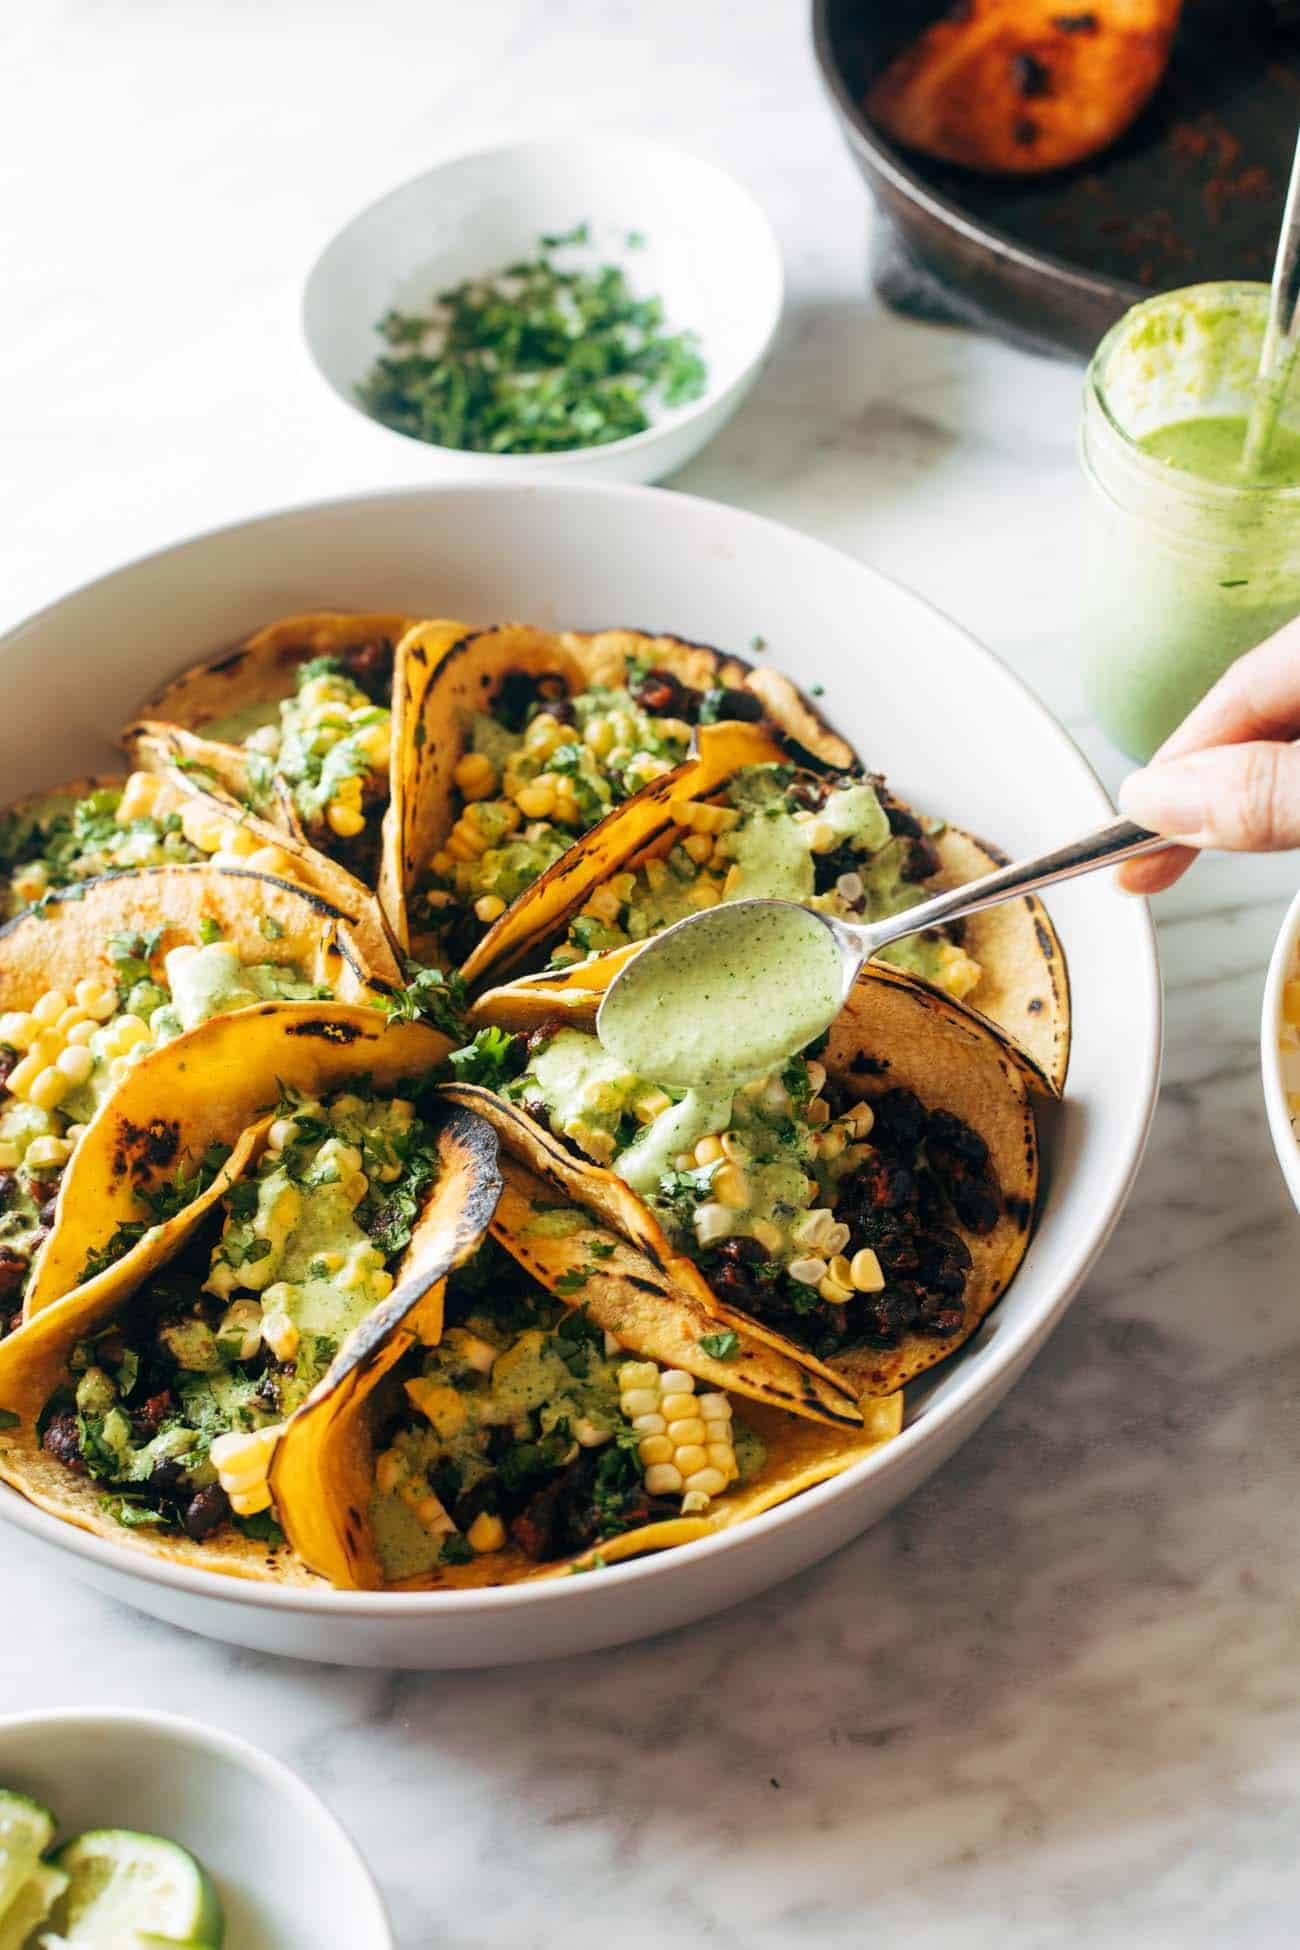 Smoky beans and greens tacos on a plate with corn and aji verde sauce being drizzled on top with a metal spoon.